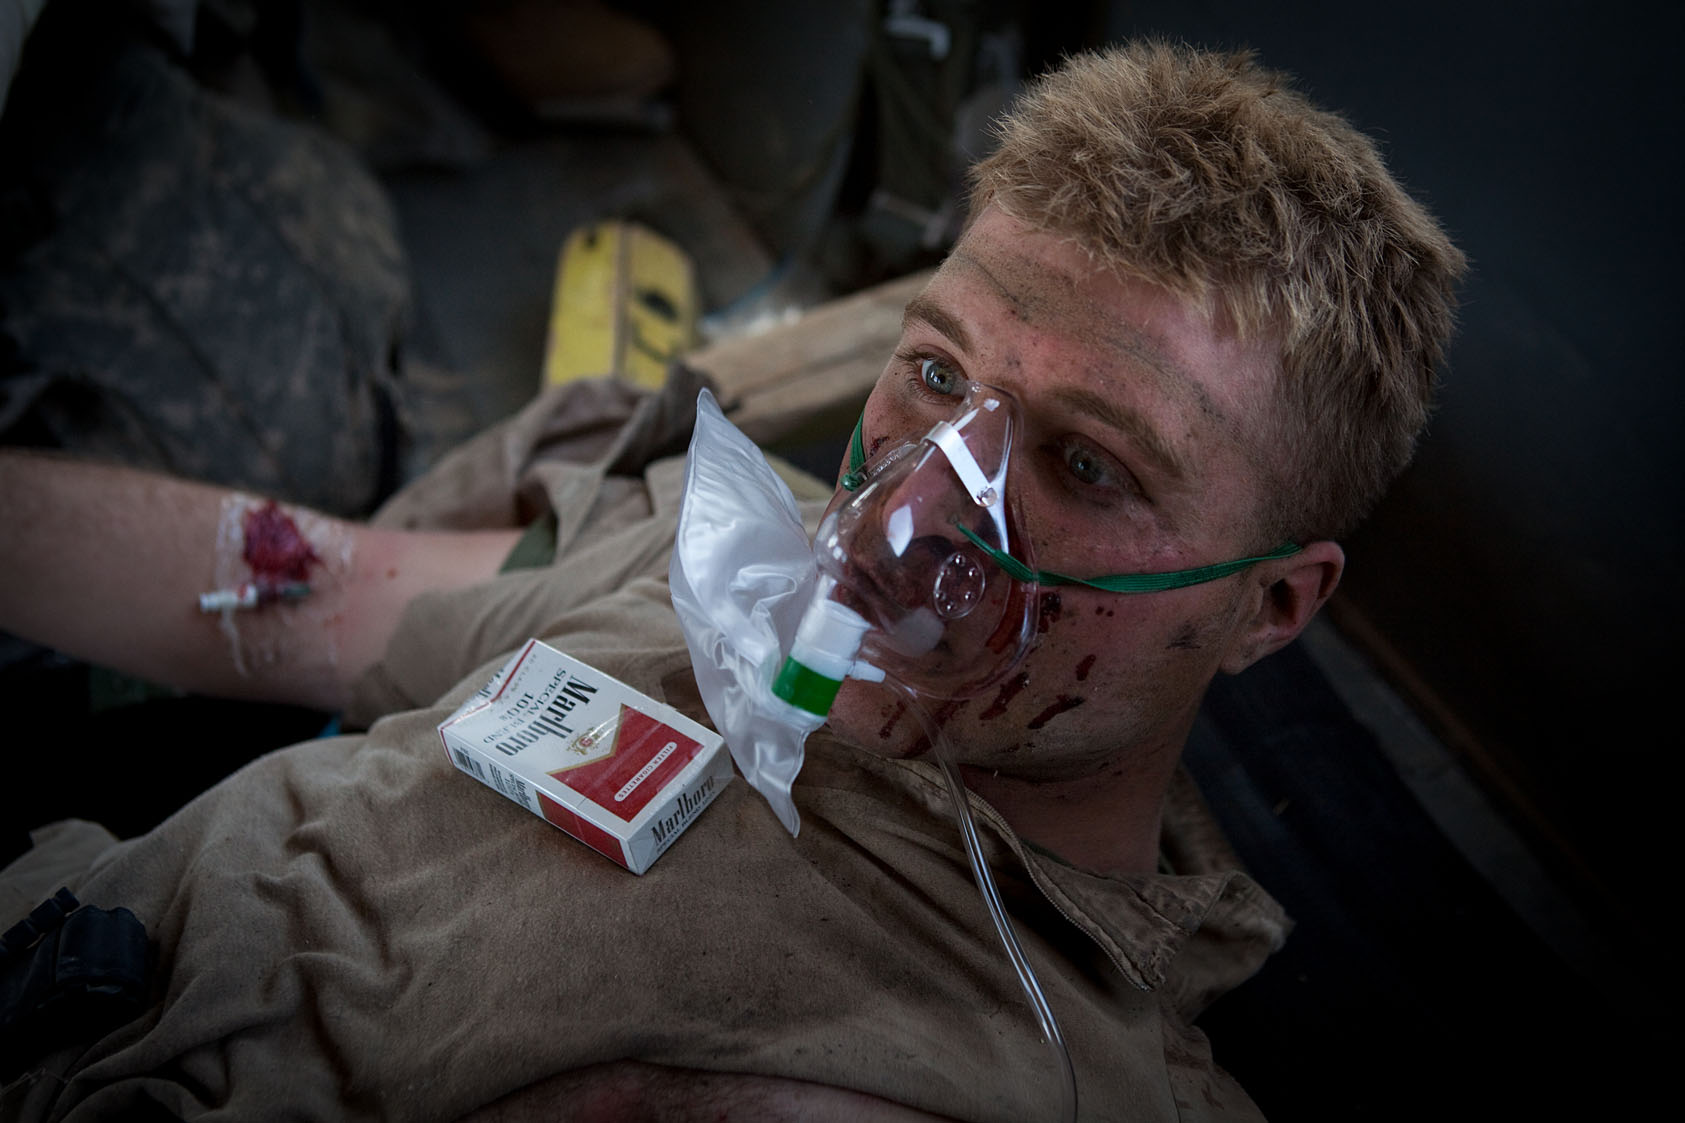 A Marine wounded by an improvised explosive device is cared for in a medevac helicopter in southern Helmand Province, Afghanistan, November 30, 2010.